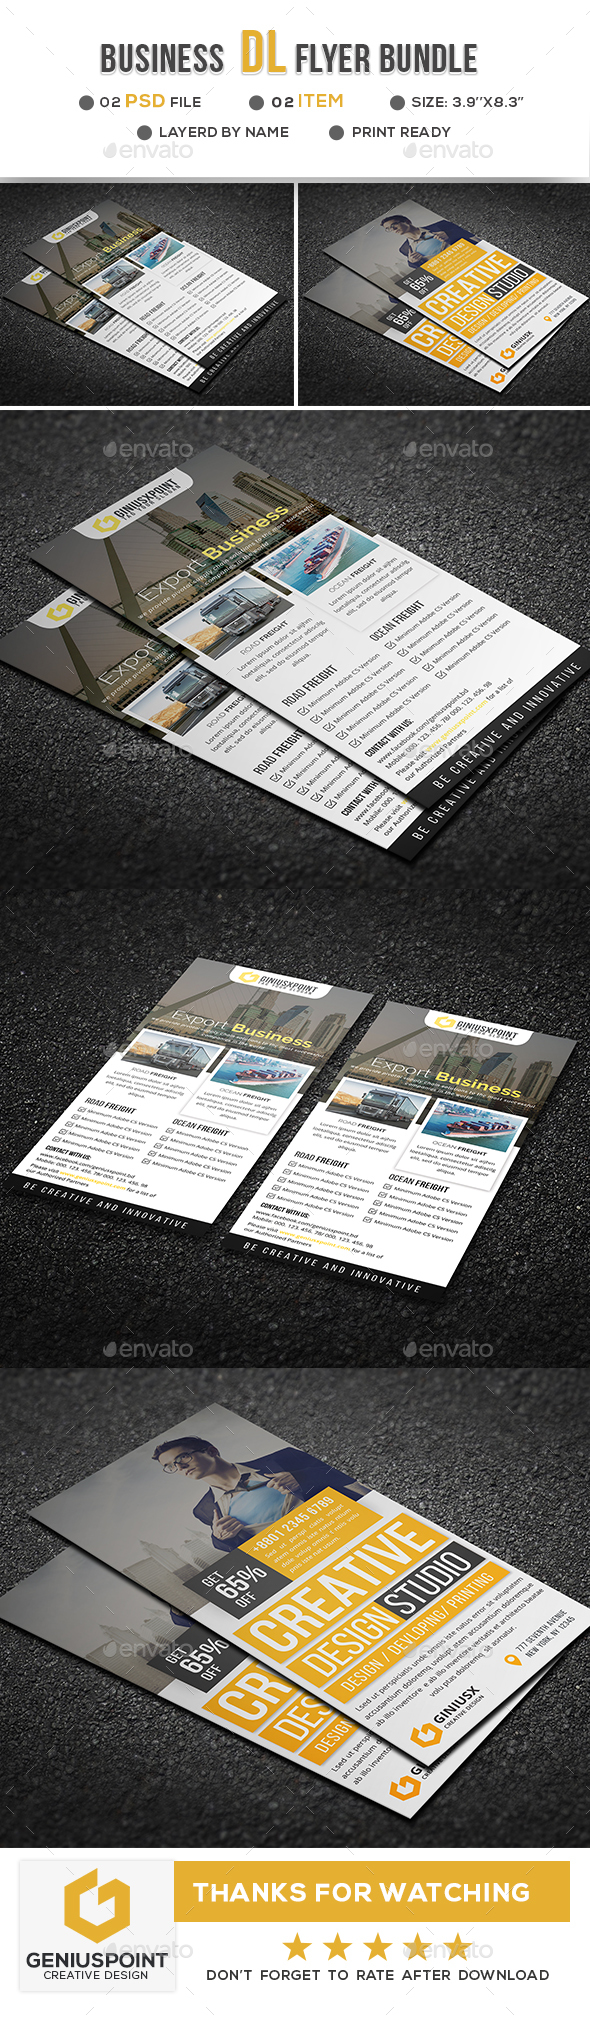 Business Dl Flyer Bundle - Corporate Flyers